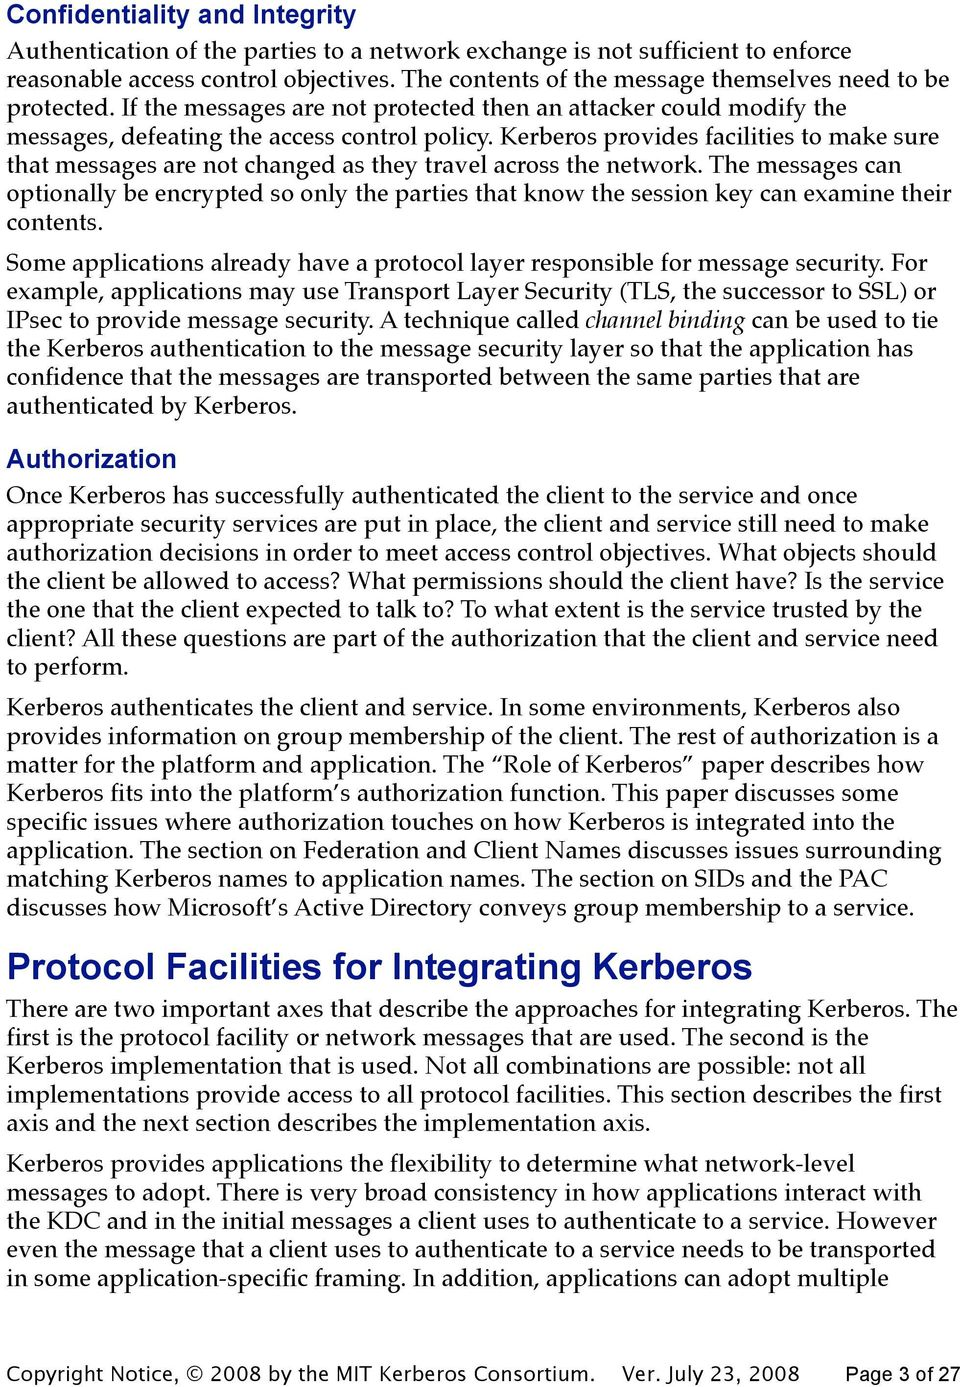 term paper on kerberos